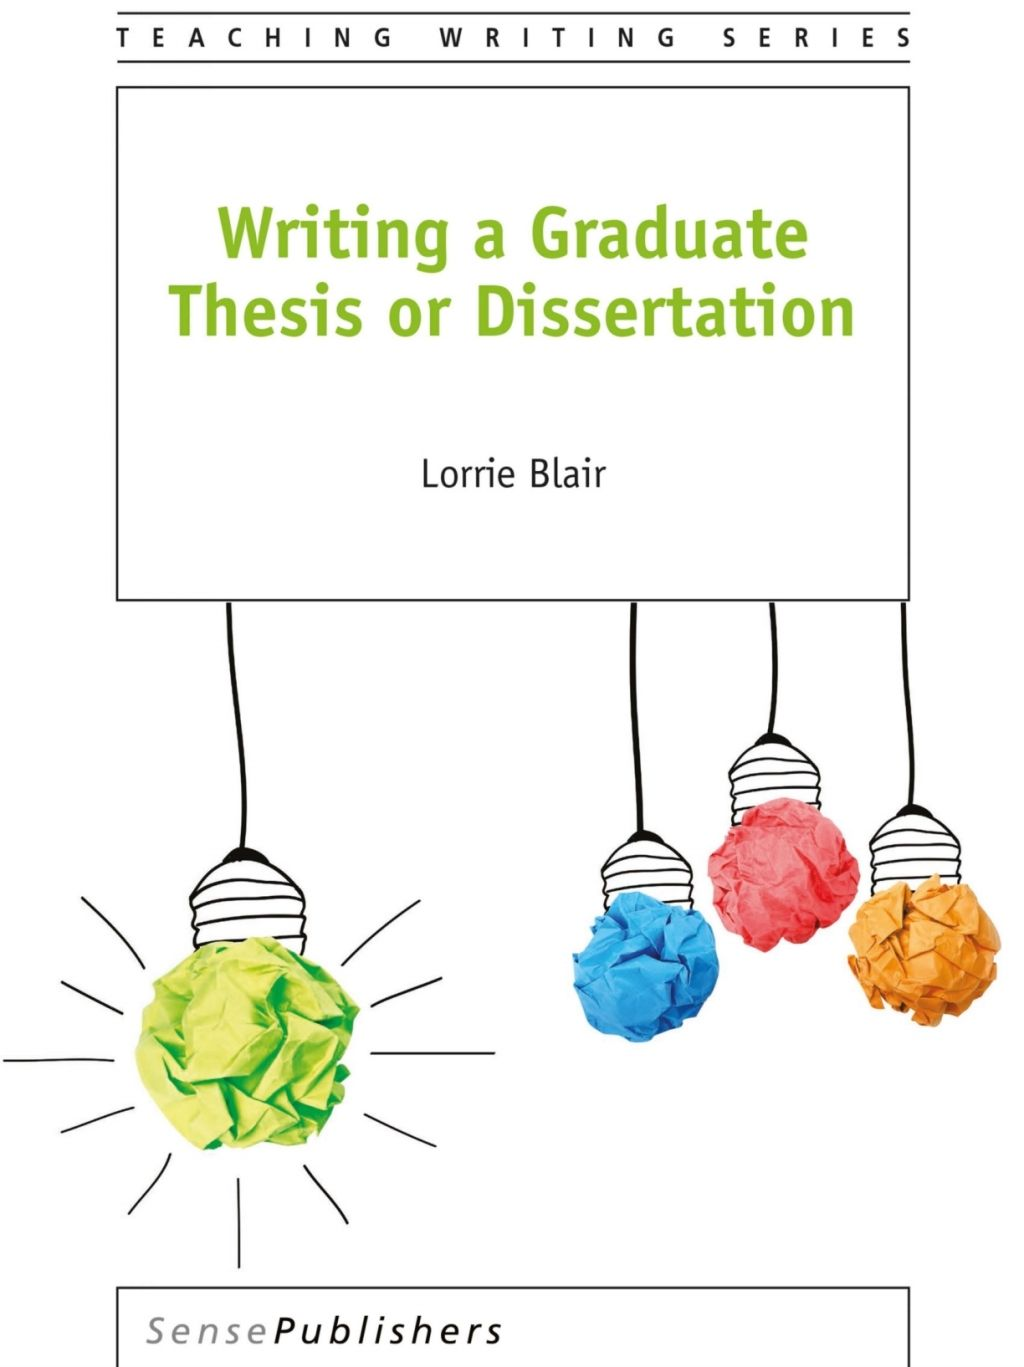 Masters thesis in education